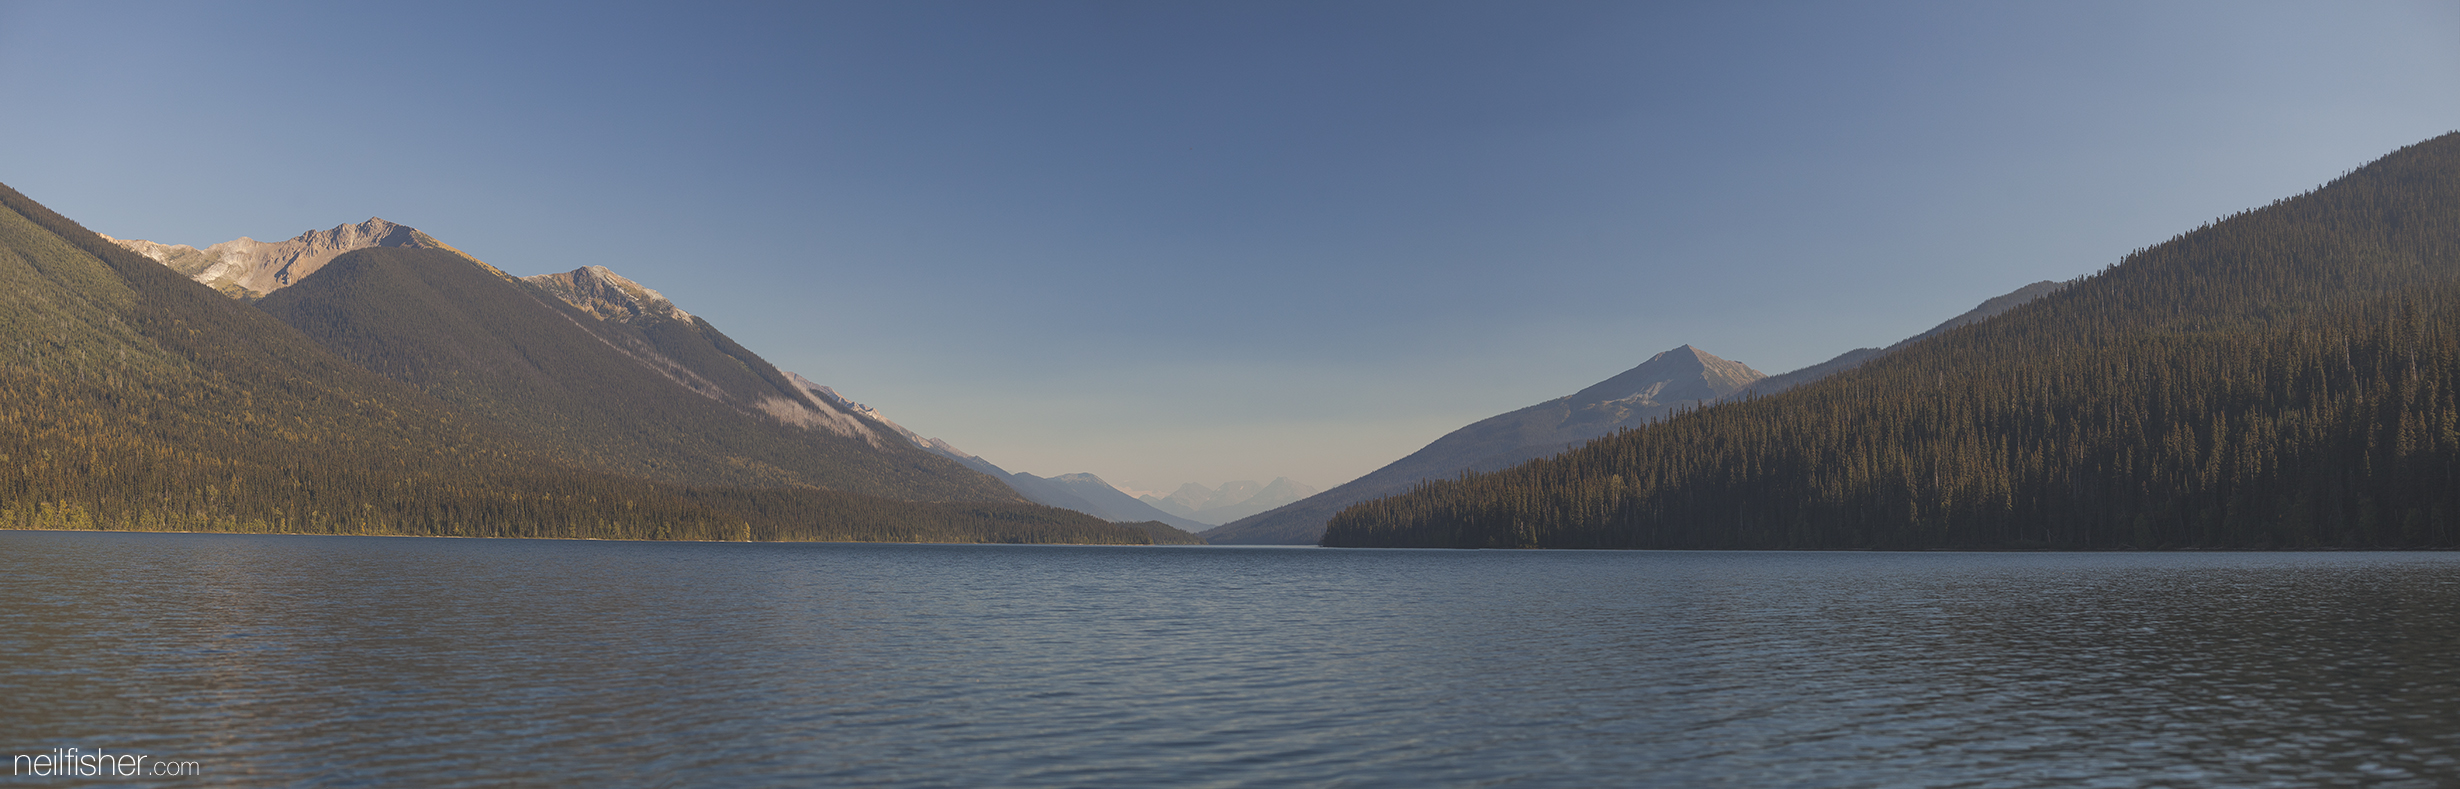 Four photos stitched together looking south down the main arm of Isaac, taken from in the canoe where the two arms intersect. The most predominant rocky peaky on the right side of the lake is  Mount Faulkner , low in the centre are the Caribou Mountains, the far left rocky peak is Mount Amos Bowman, and to the right of Mount Amos Bowman is Vixen Peak. EXIF 1/400 f/4.0 ISO200 70mm